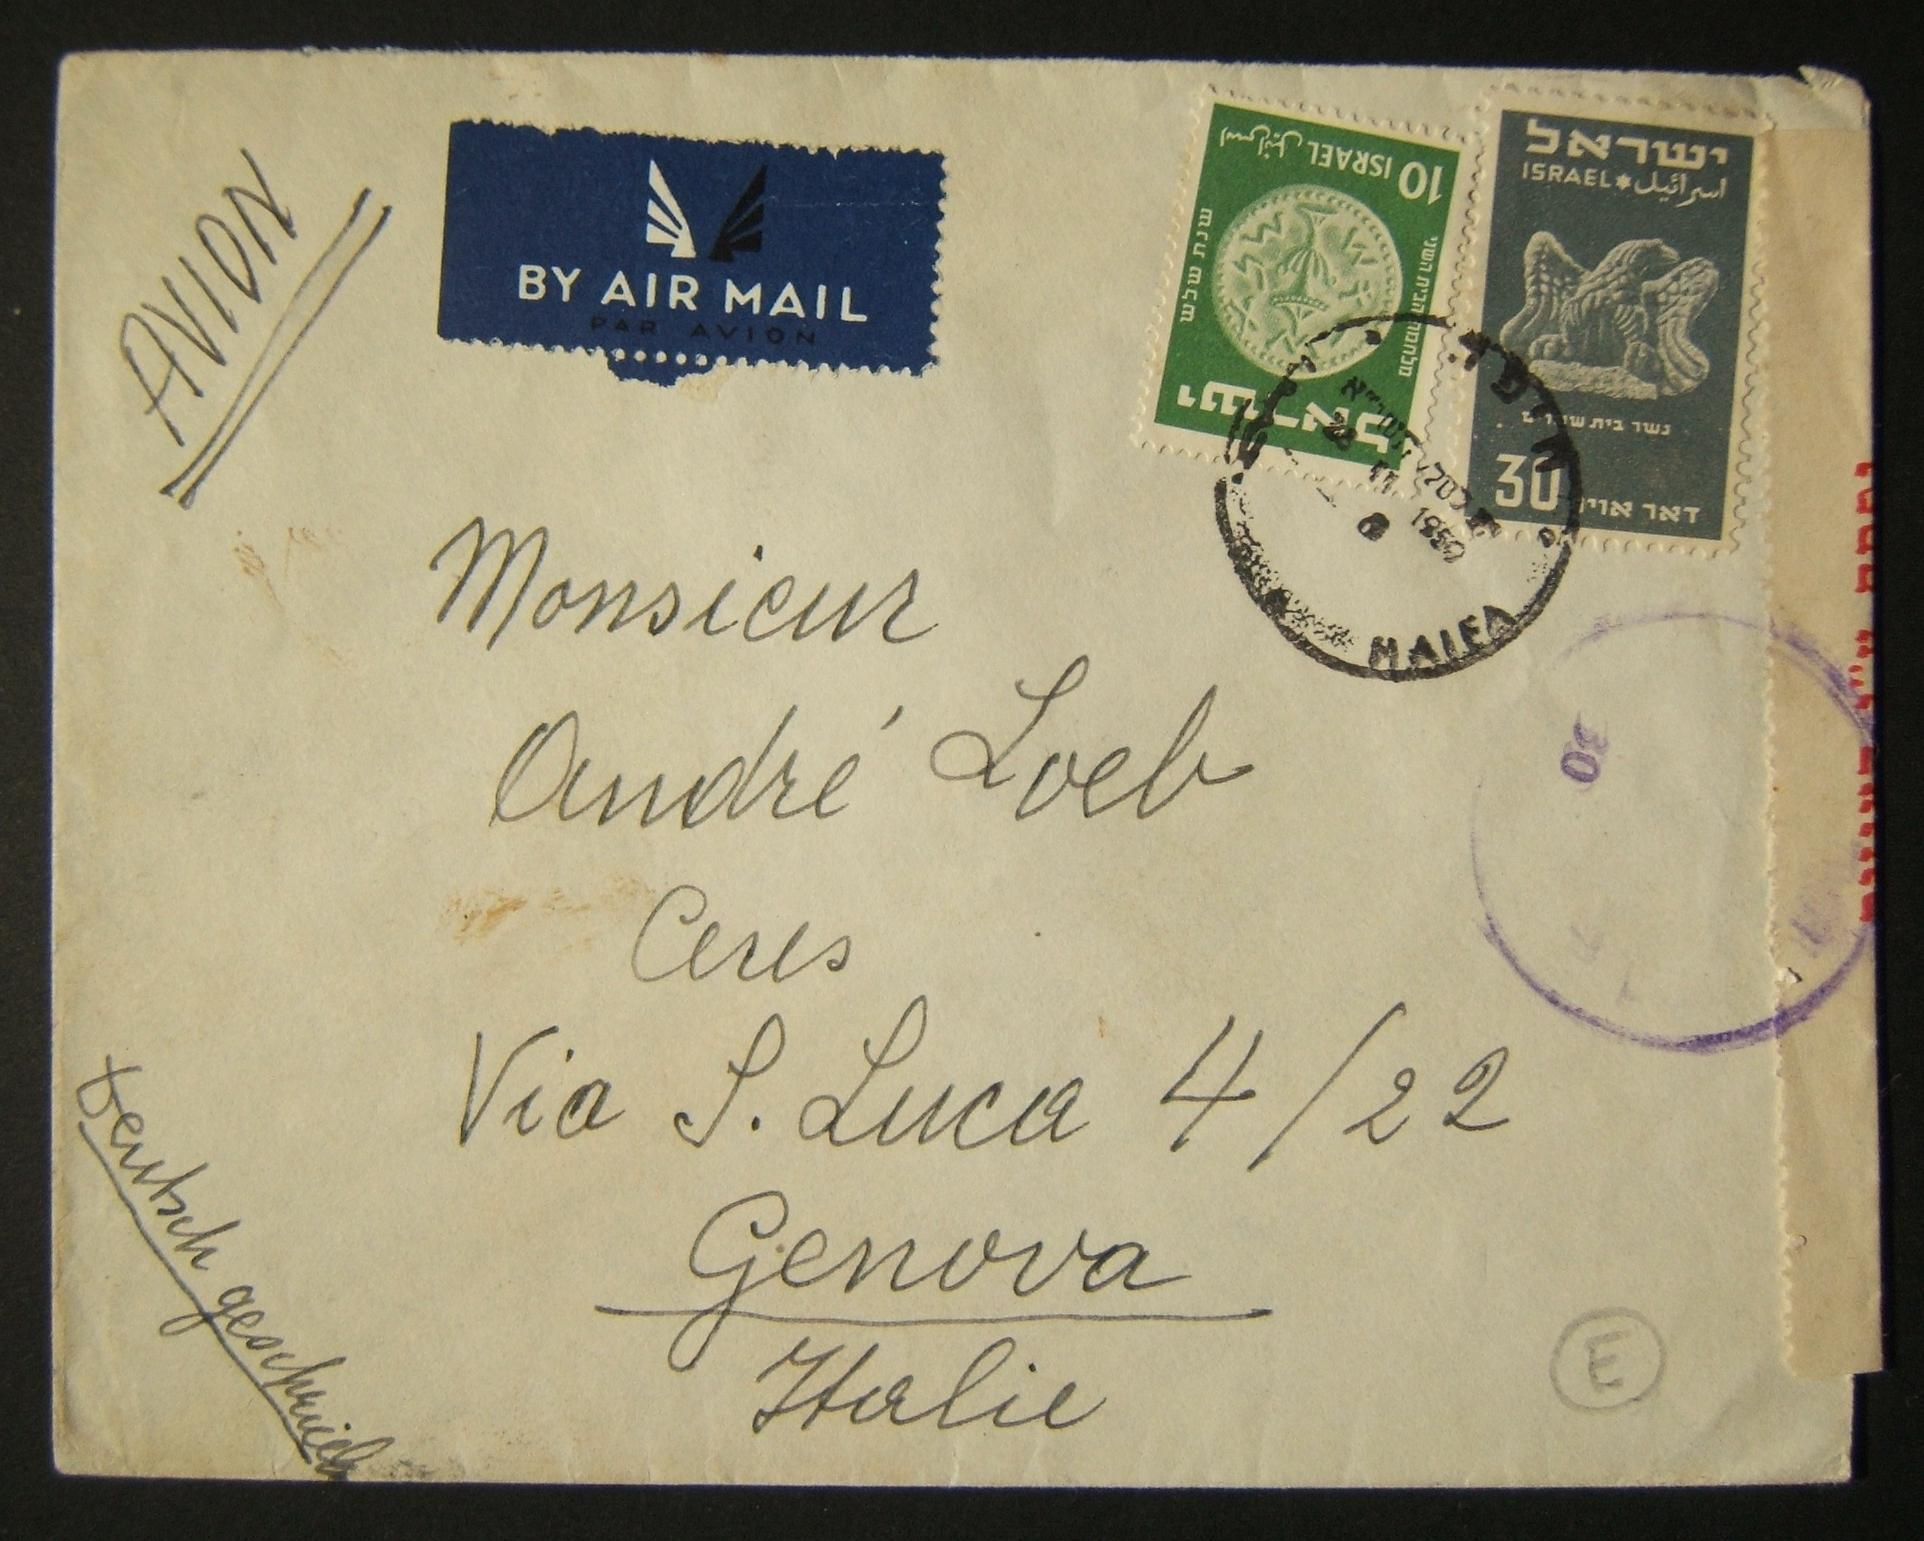 1950 1st airmail / PO's, rates & routes: 28-11-1950 airmail cover ex HAIFA to GENOVA franked 40pr at the FA-2a period rate to Europe using 30pr (Ba33) + 10pr 1950 3rd Coinage (Ba43